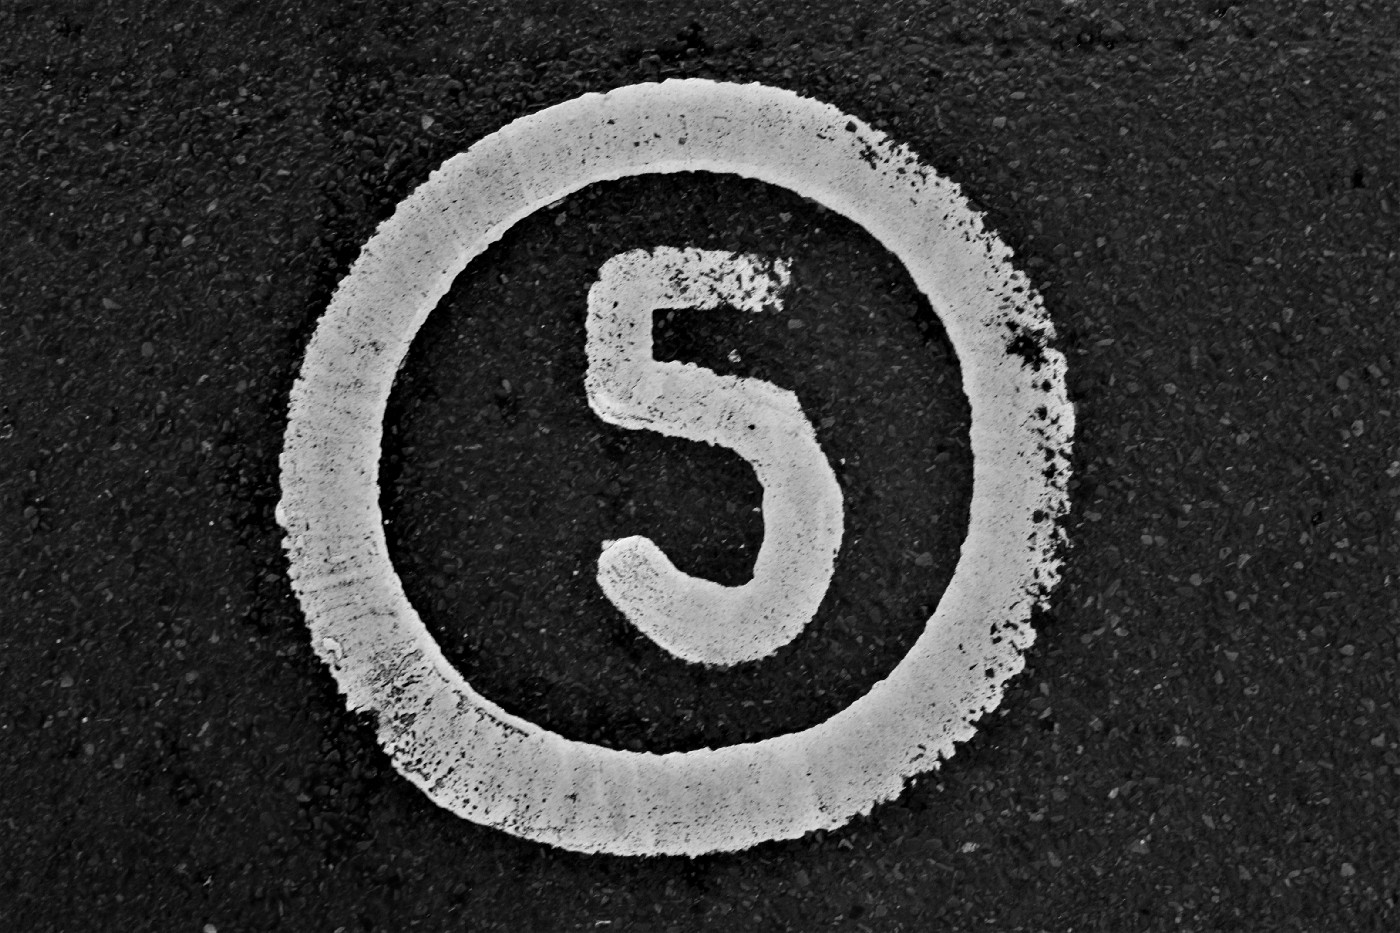 A simple image of the number five in white paint against a black background. The five is encircled with more white paint.